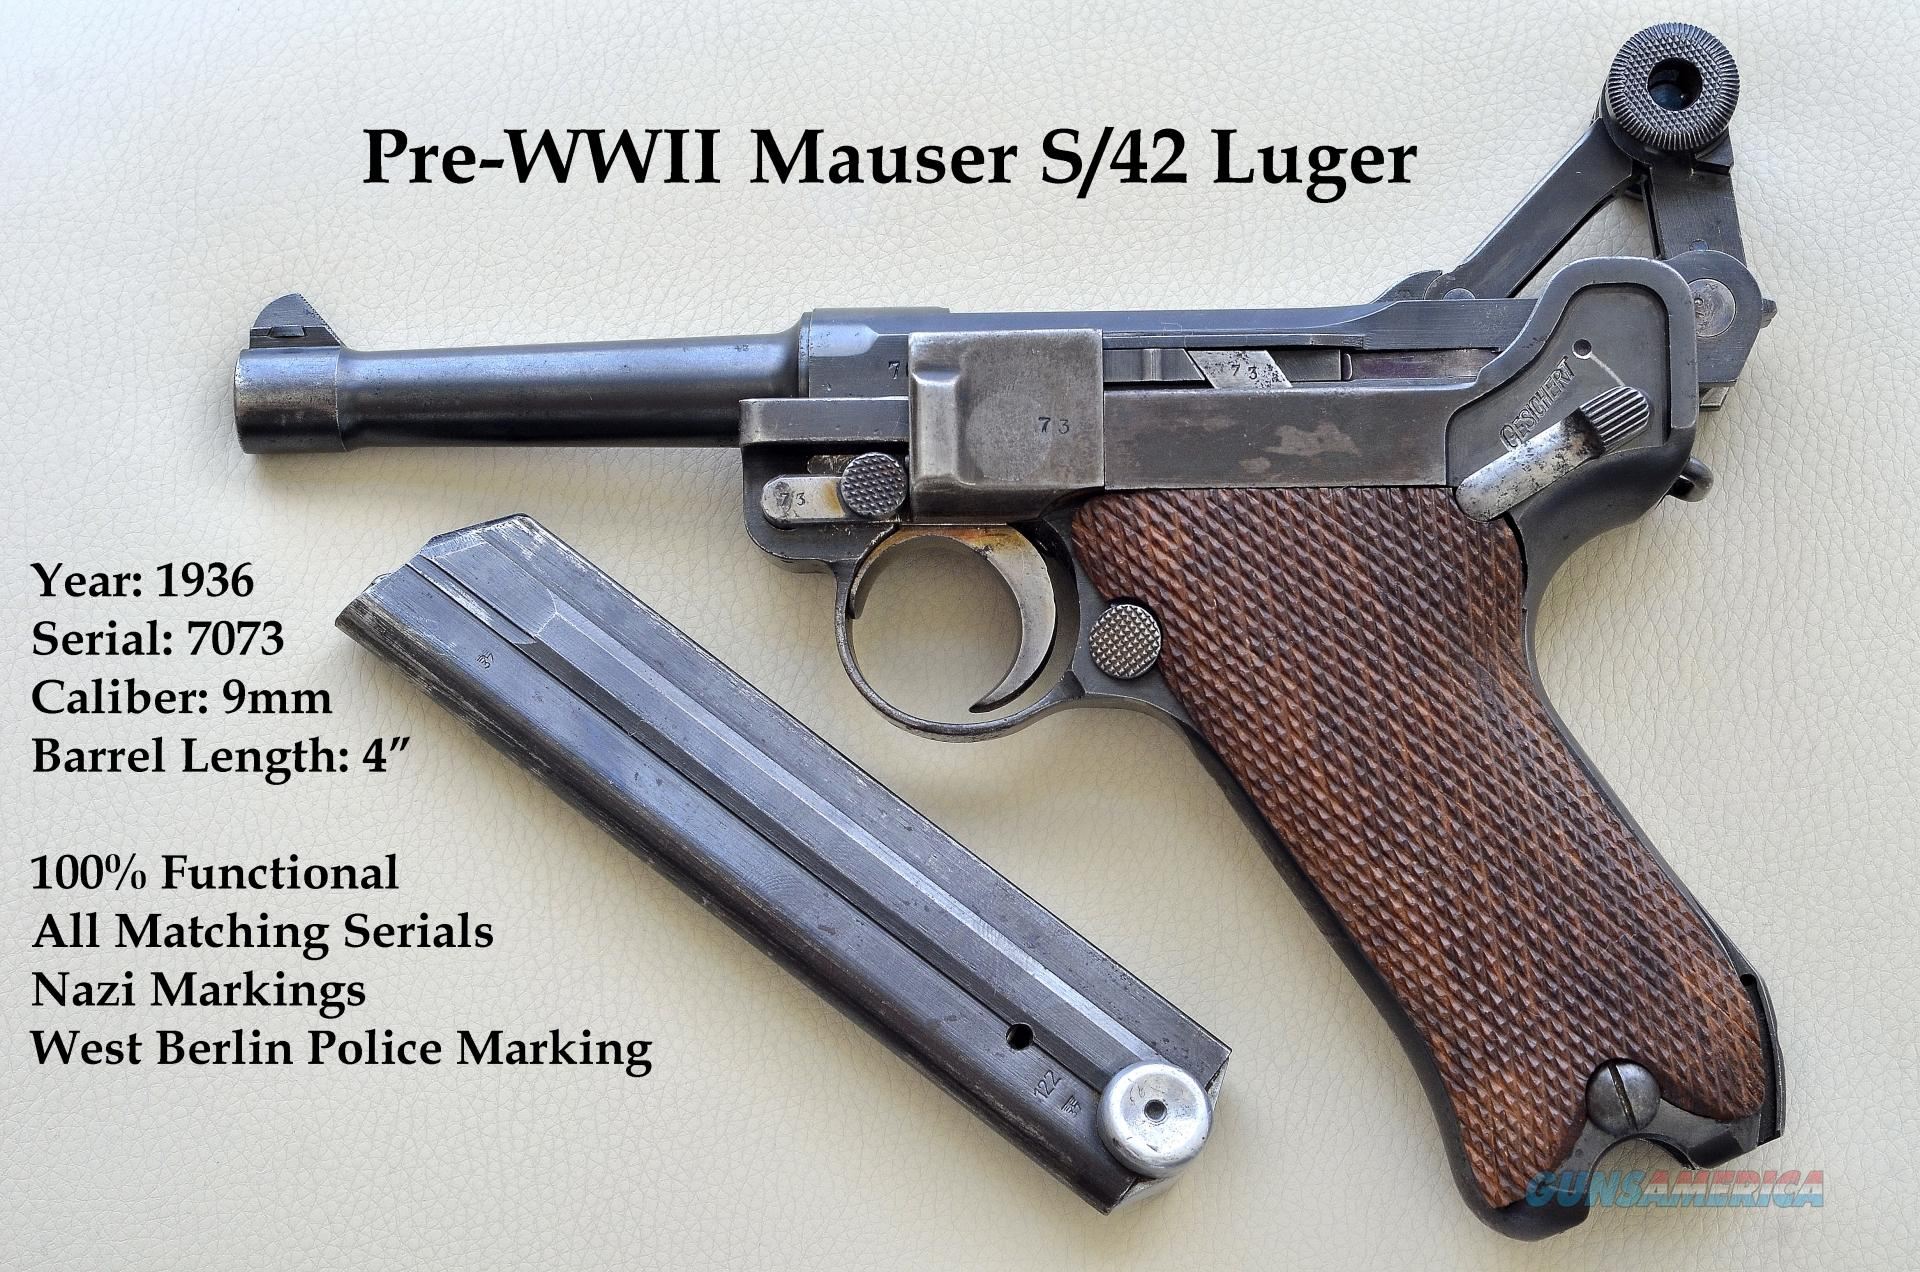 1936 Pre-WWII Mauser Luger Nazi S/42 9mm [No Reserve]  Guns > Pistols > Mauser Pistols